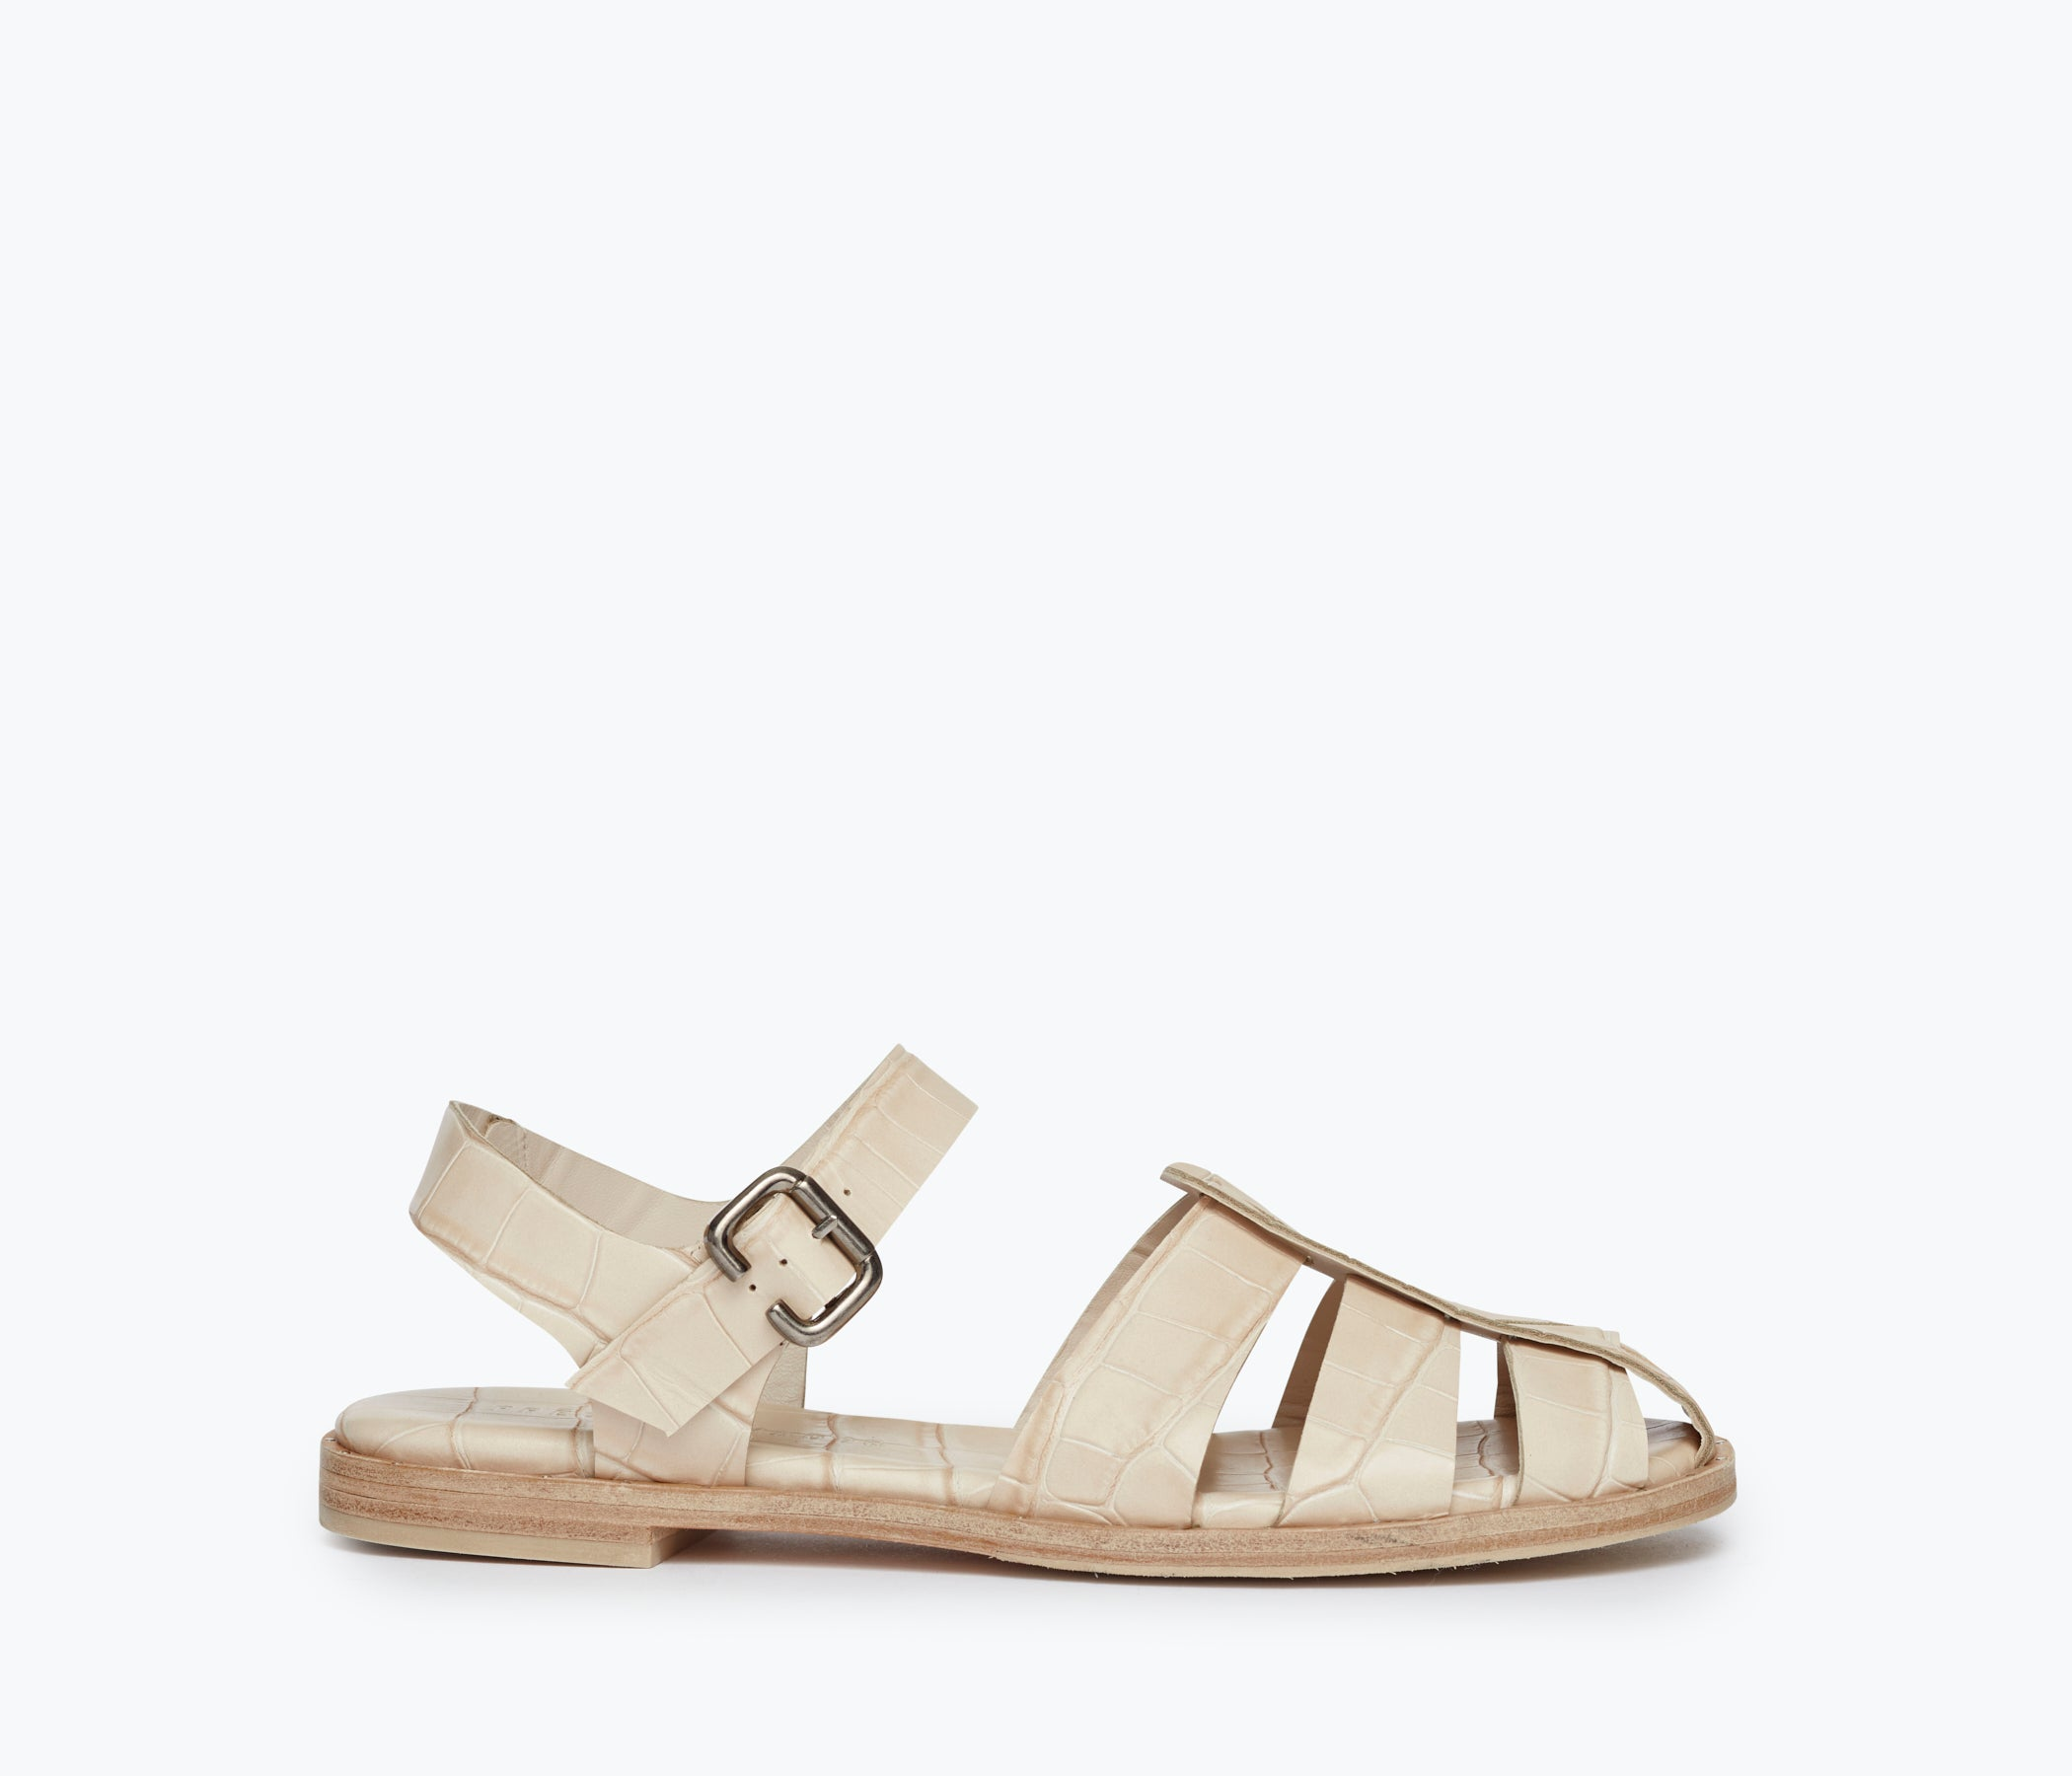 SERA FISHERMAN SANDAL, [product-type] - FREDA SALVADOR Power Shoes for Power Women